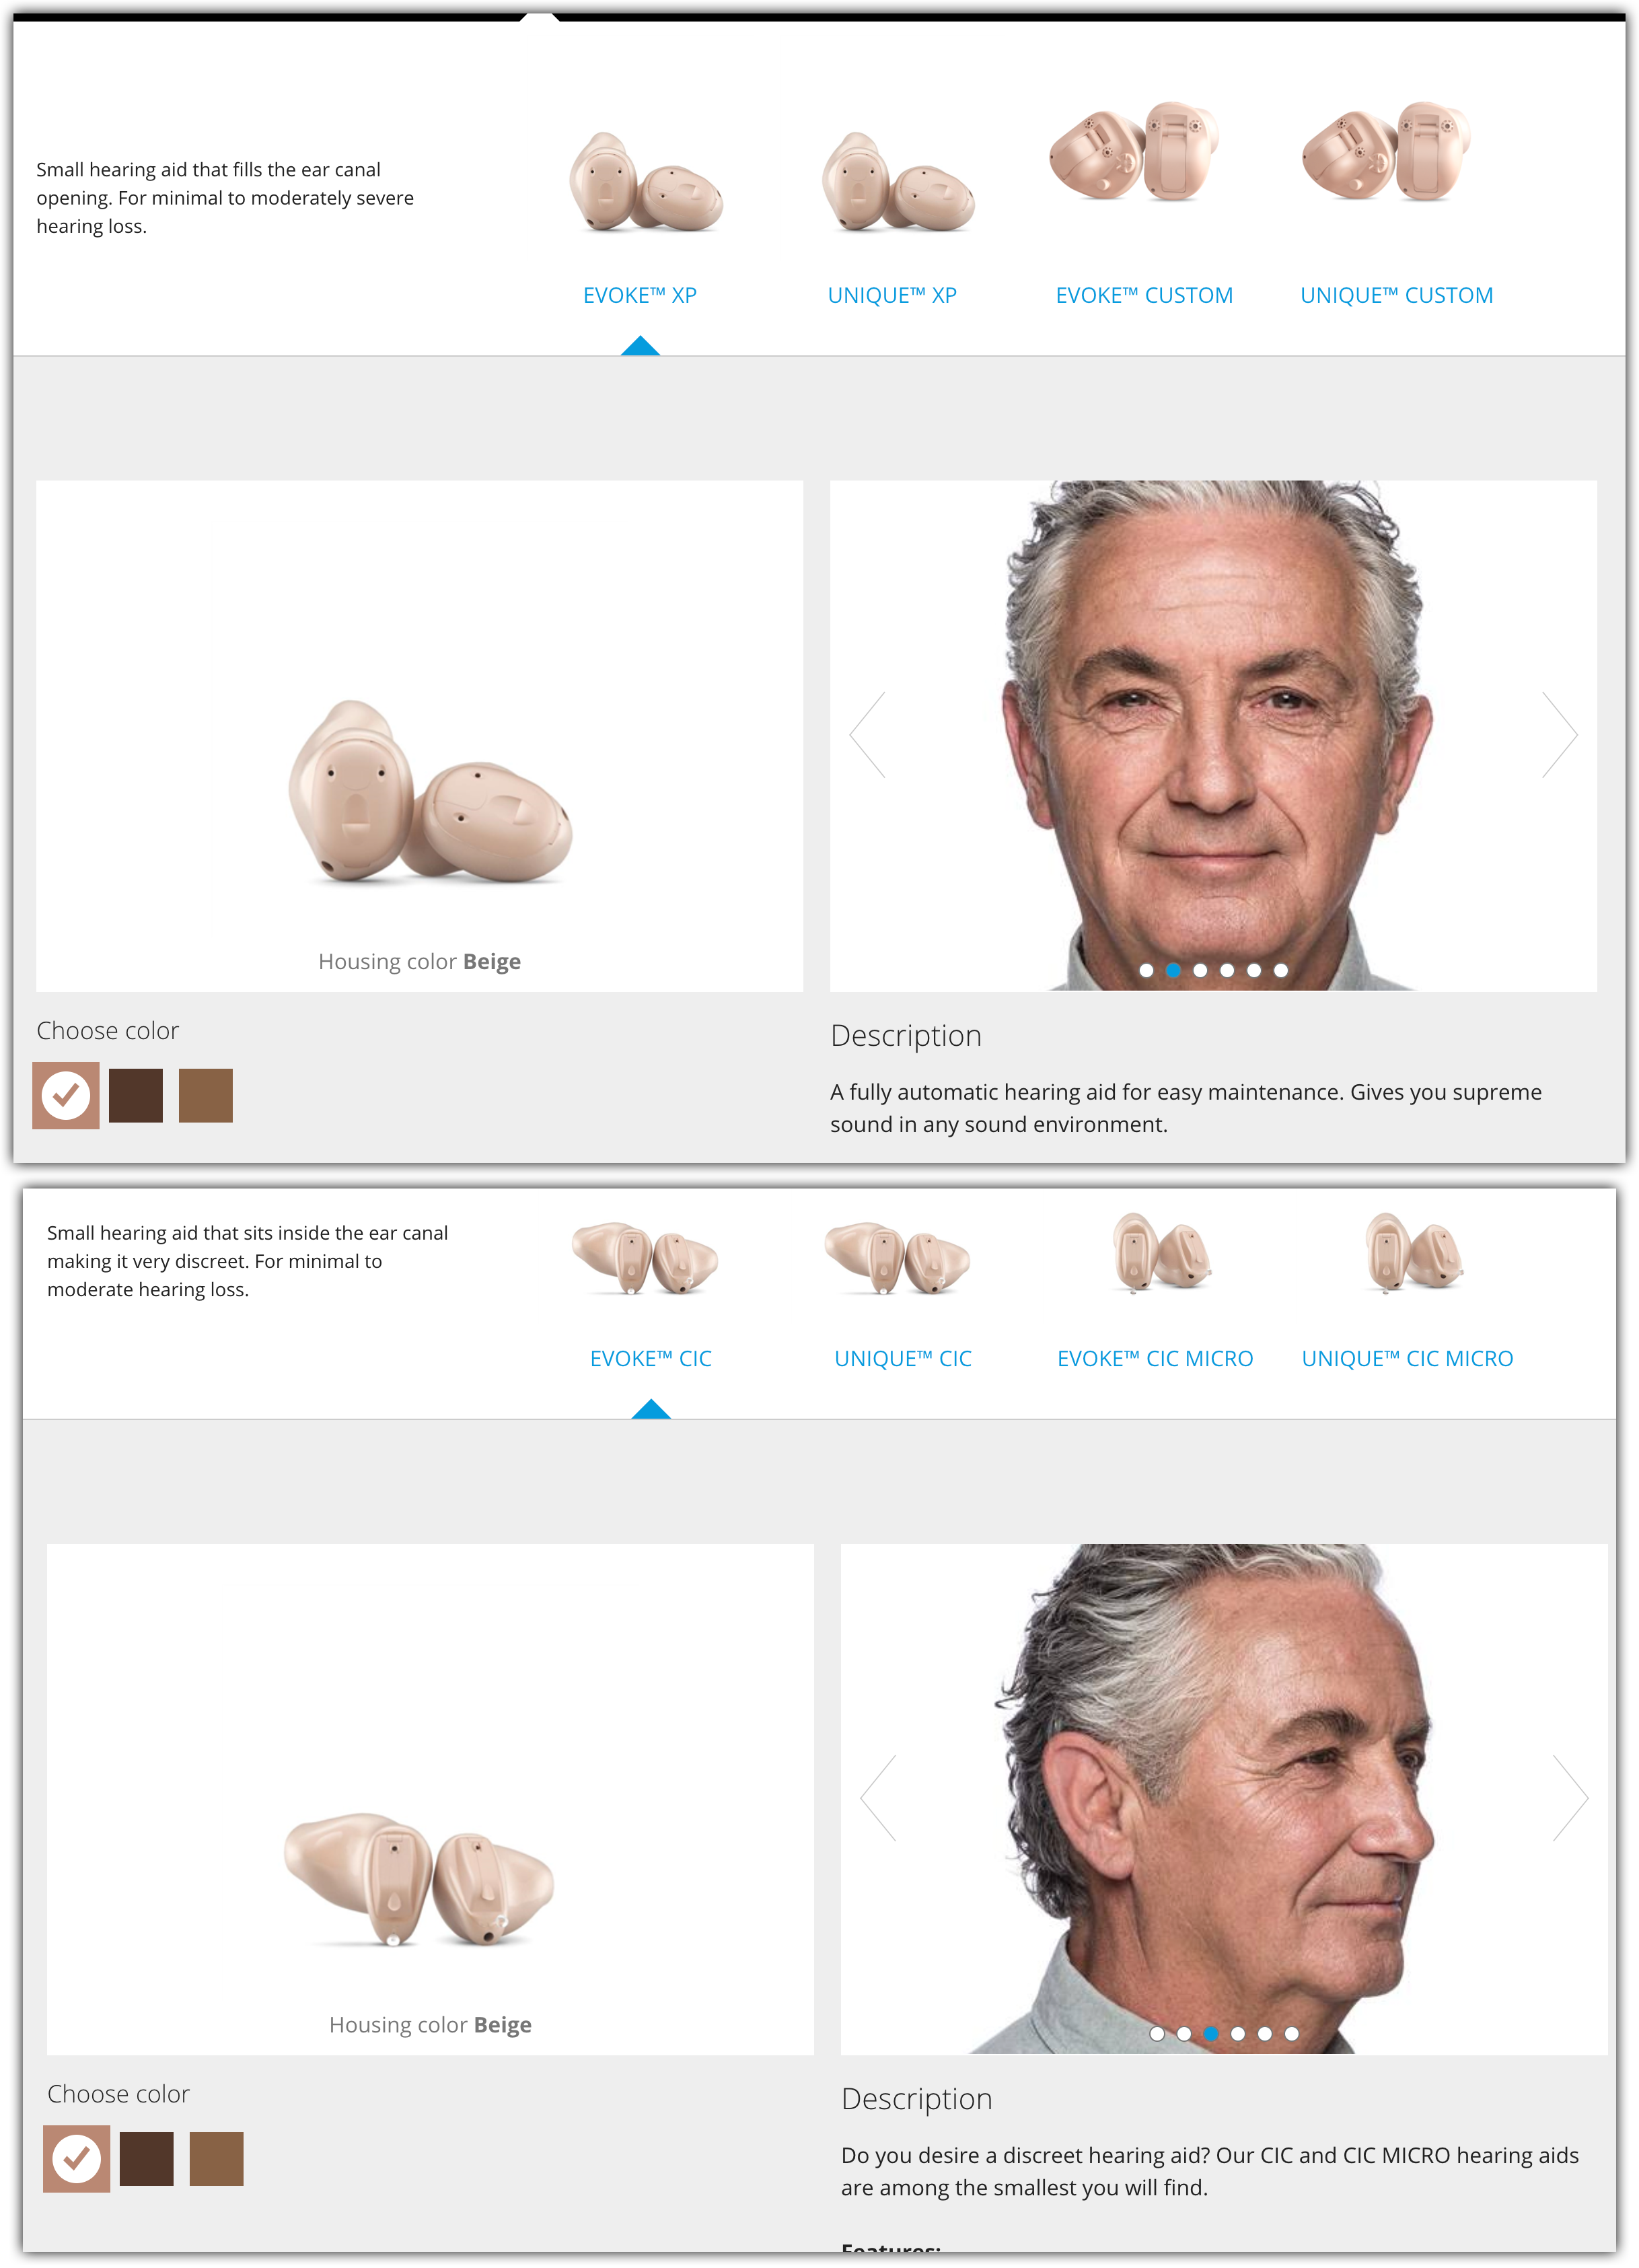 two images of widex hearing aids evoke XP and unique XP. Two versions of inside-the-ear hearing aids